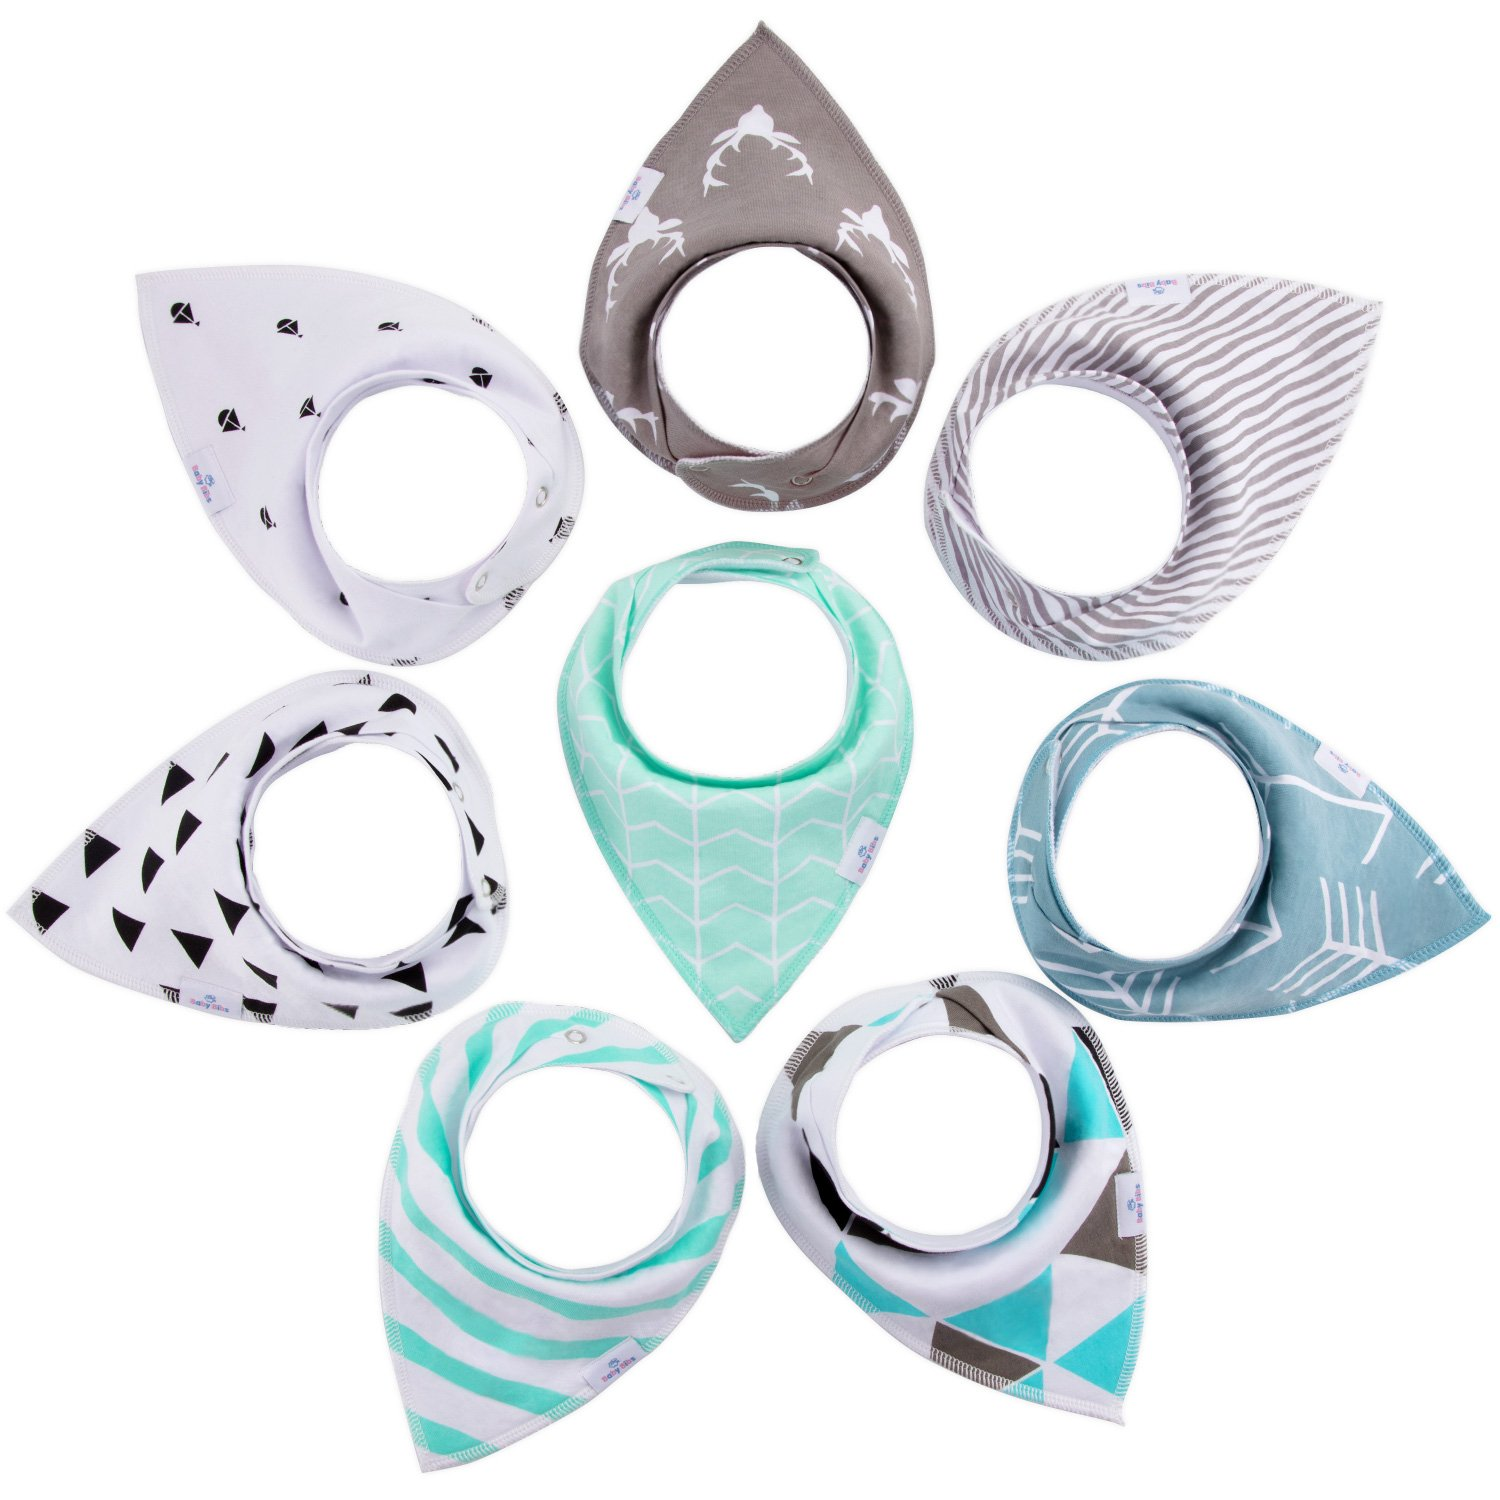 Baby Bandana Drool Bibs, 8 Packs Baby Bibs with Adjustable Snaps Fiery Youth